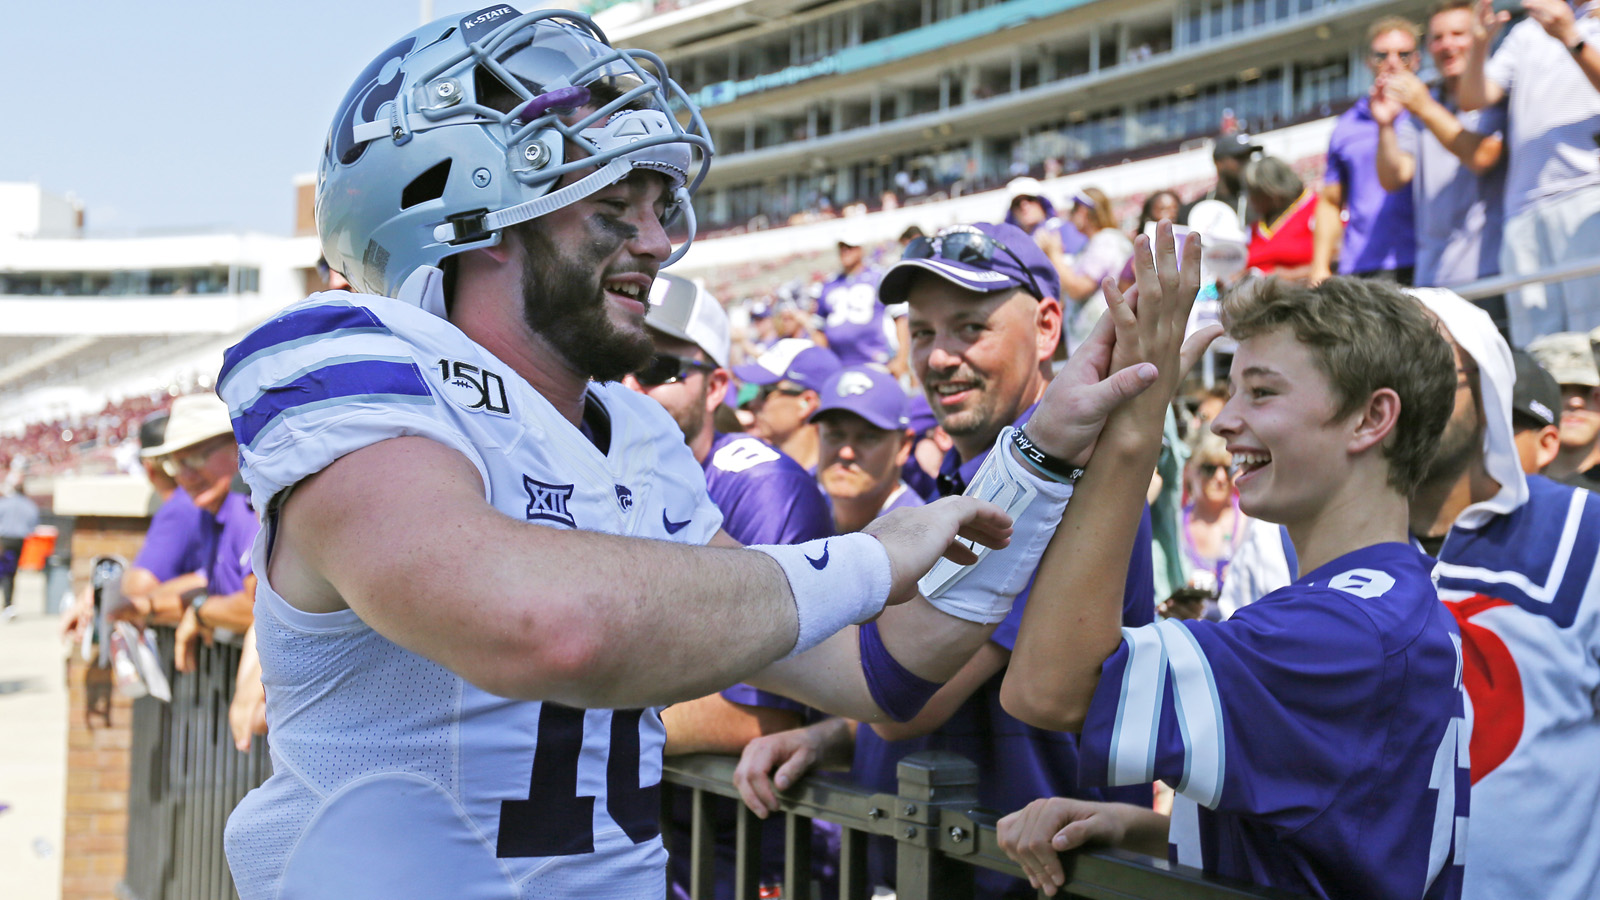 Thompson rises to the challenge as K-State defeats Mississippi State 31-24